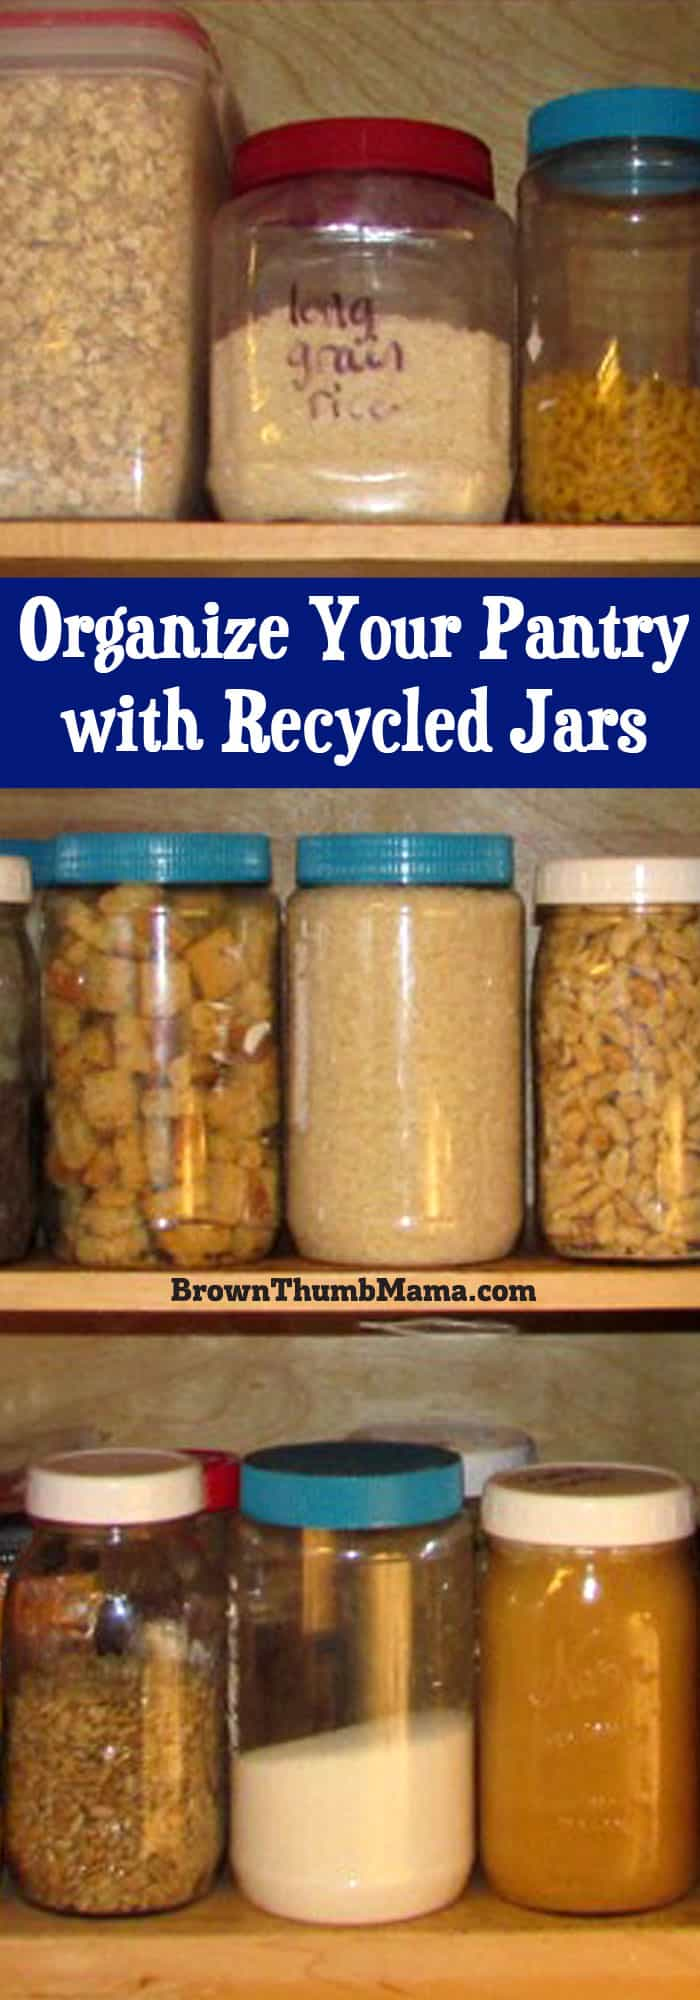 Organize Your Pantry With Recycled Jars Brown Thumb Mama